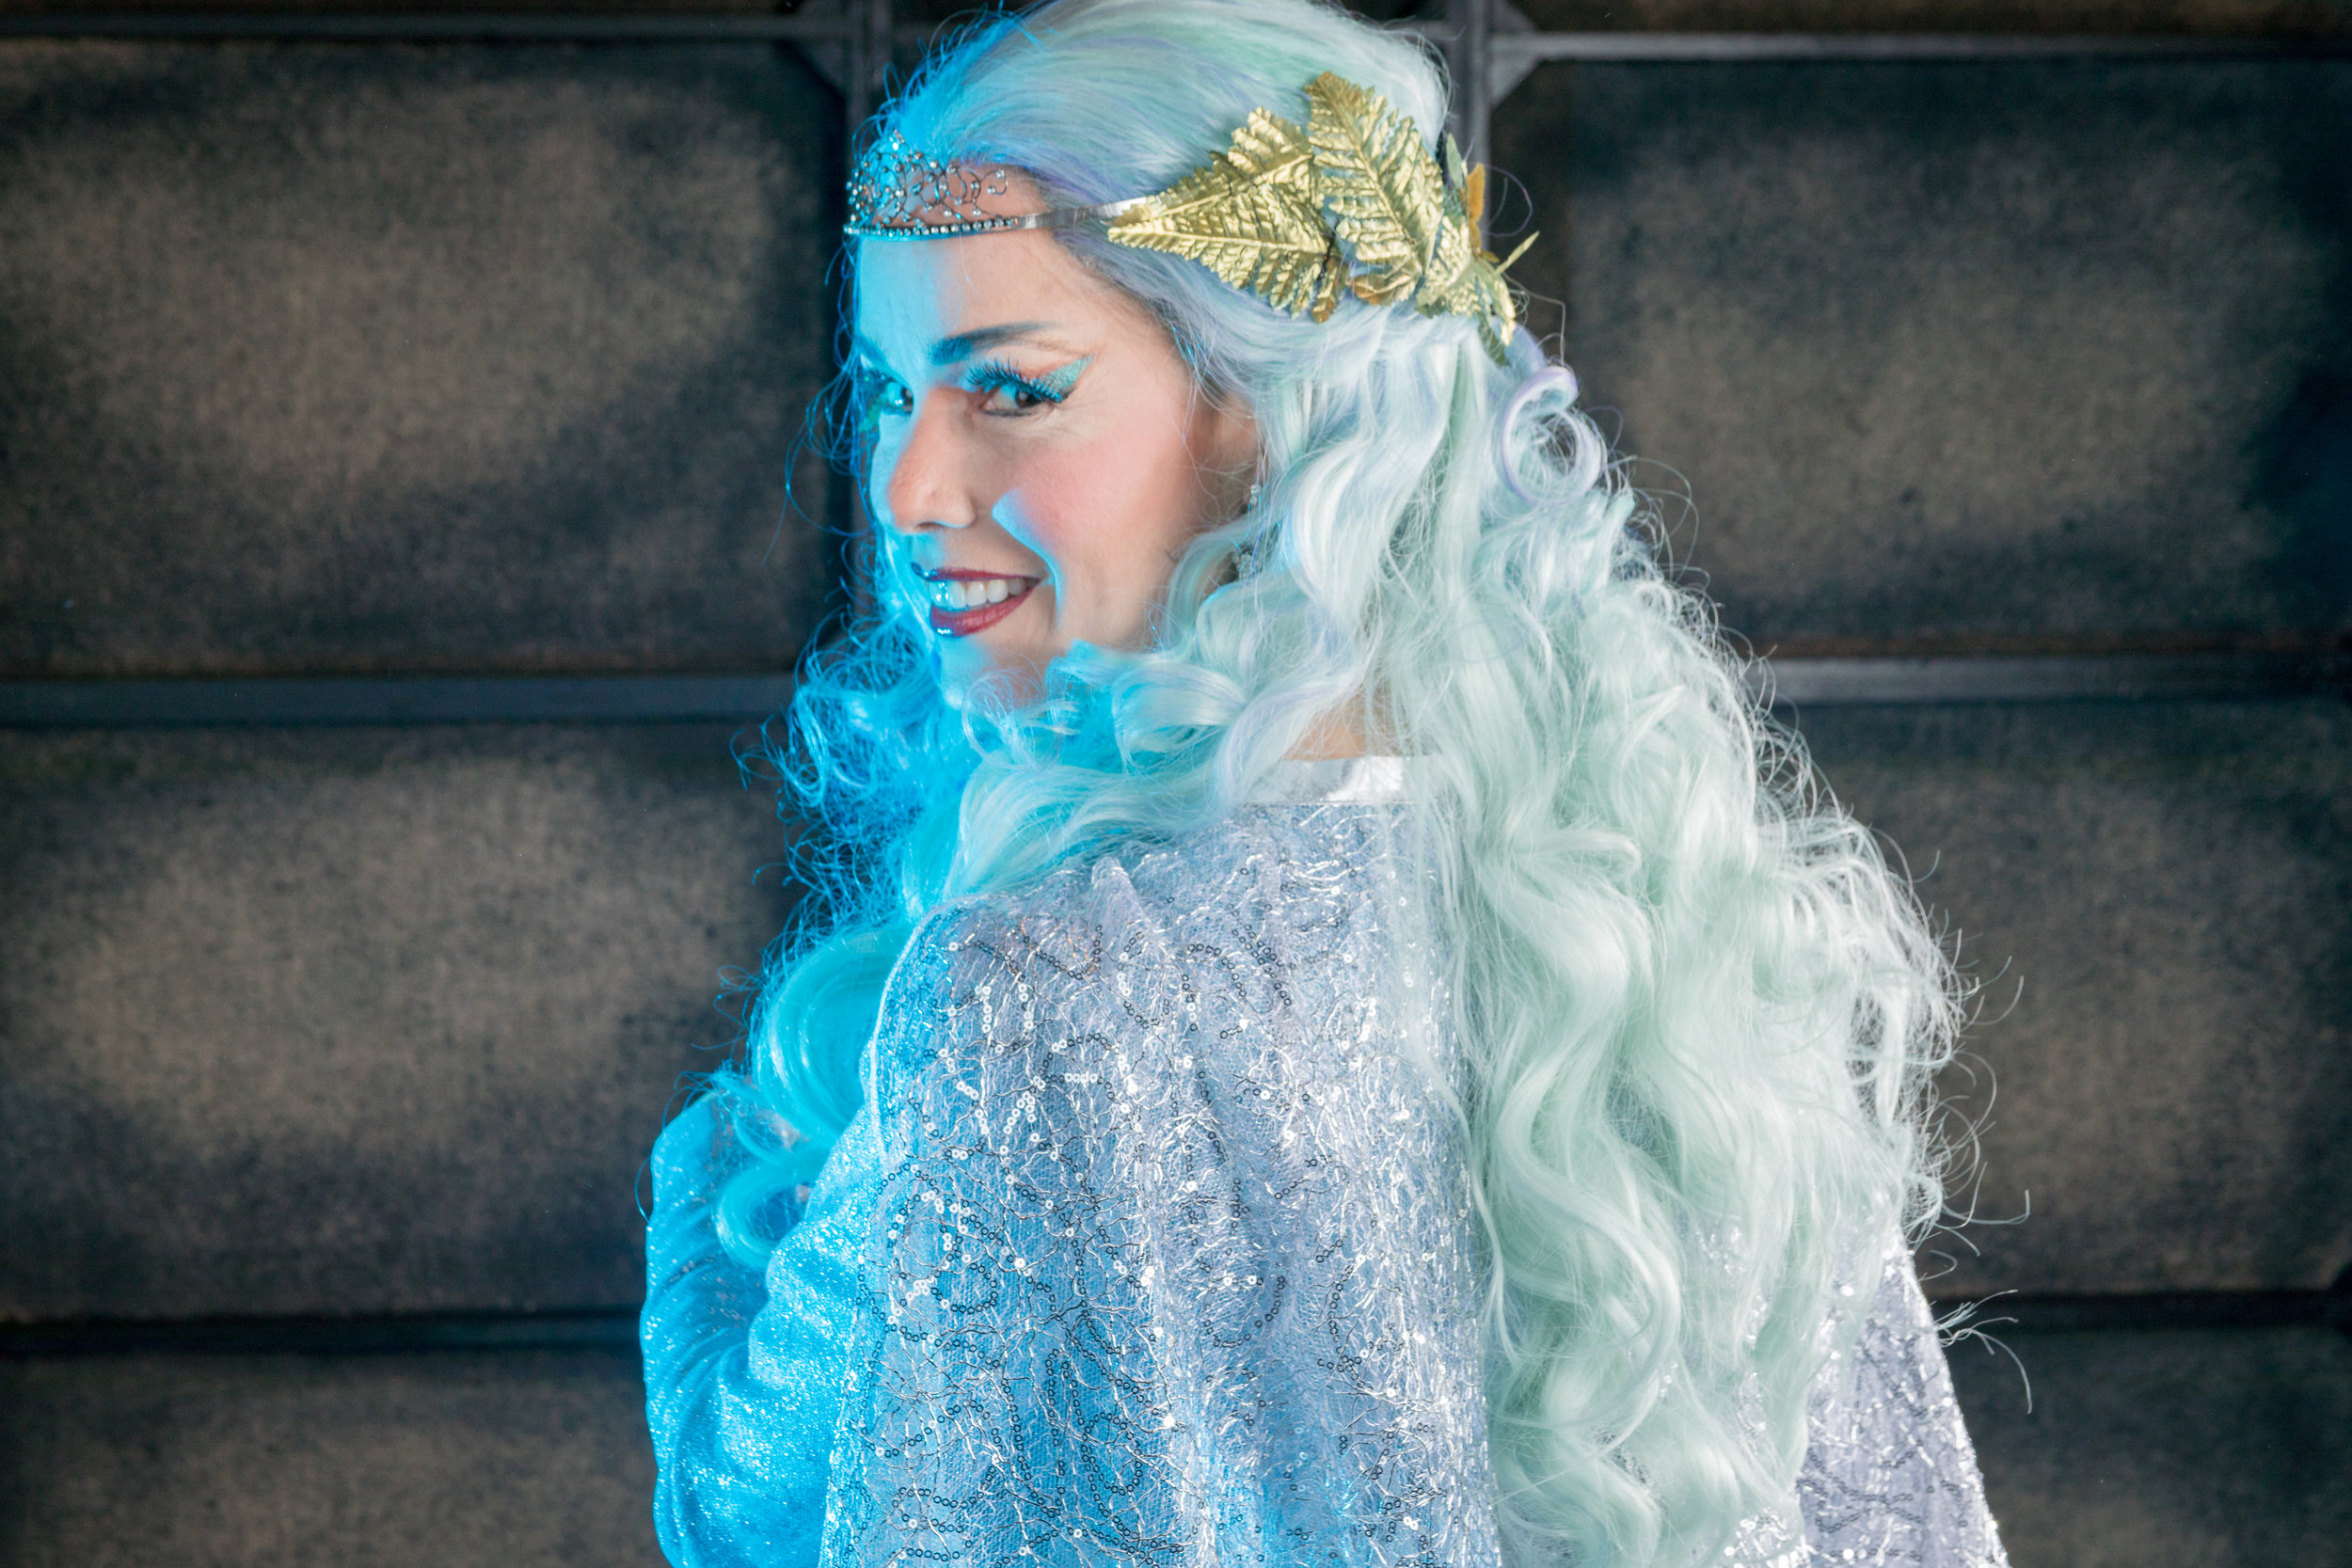 Heather Buck as Tytania, Queen of the fairies. Photo by Ben Schill Photography; courtesy of Virginia Opera.